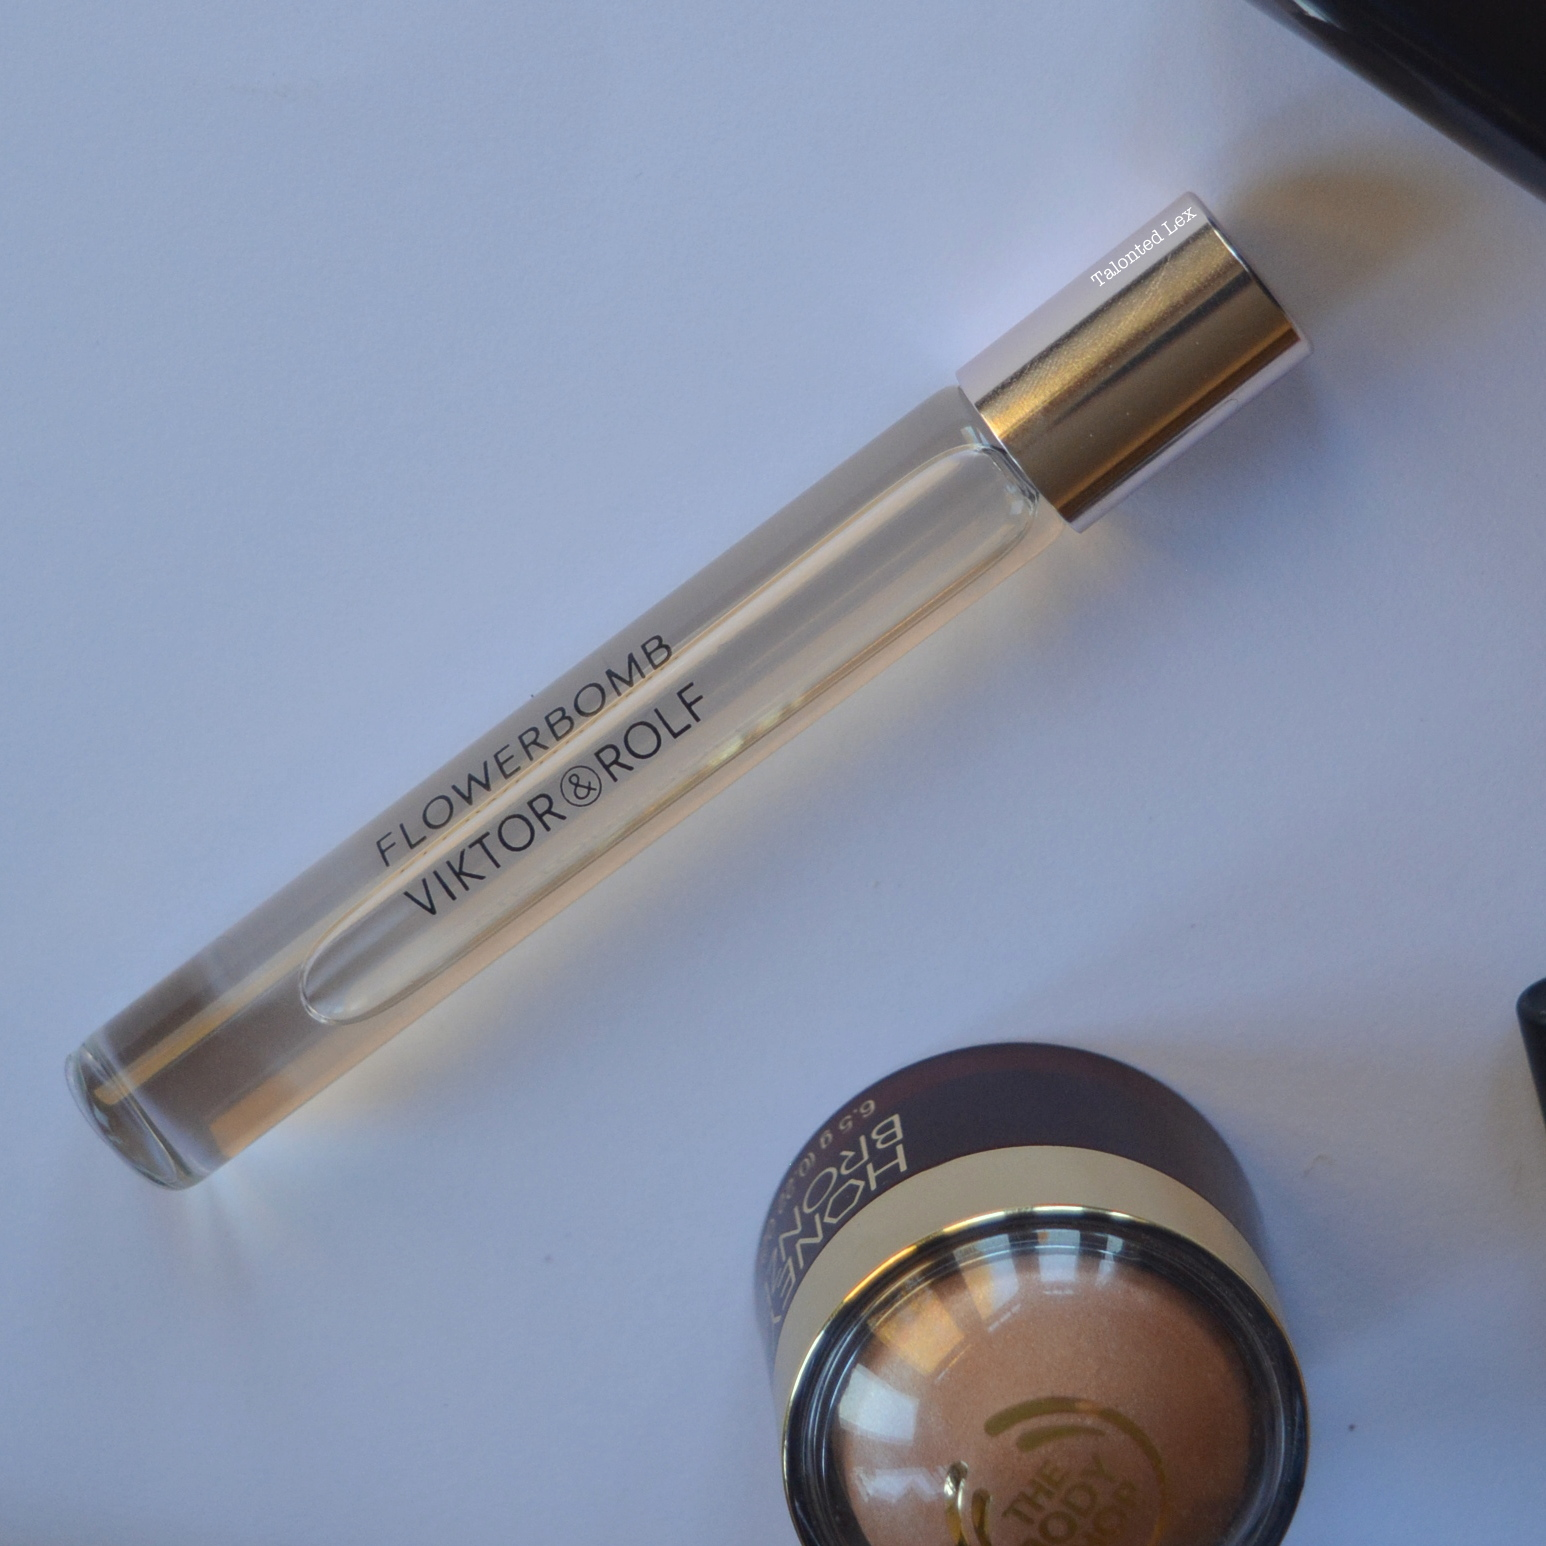 October-2015-Monthly-Beauty-and-Lifestyle-Favourites-Talonted-Lex-victor-and-rolf-flowerbomb-rollerball